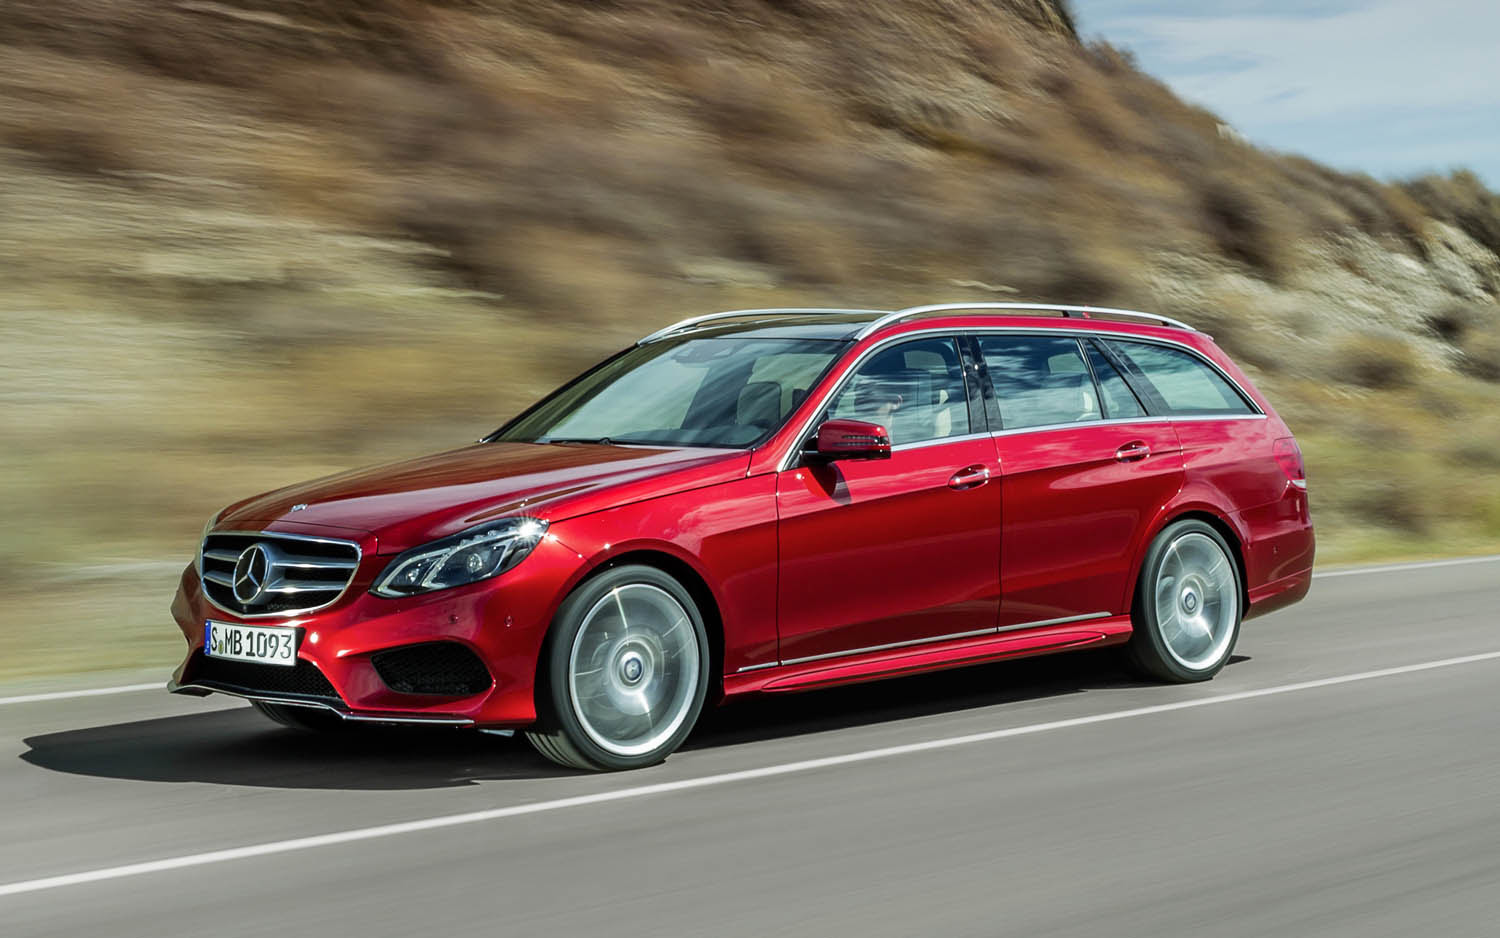 Mercedes Benz USA Selling More Luxury Cars Than Ever In ...